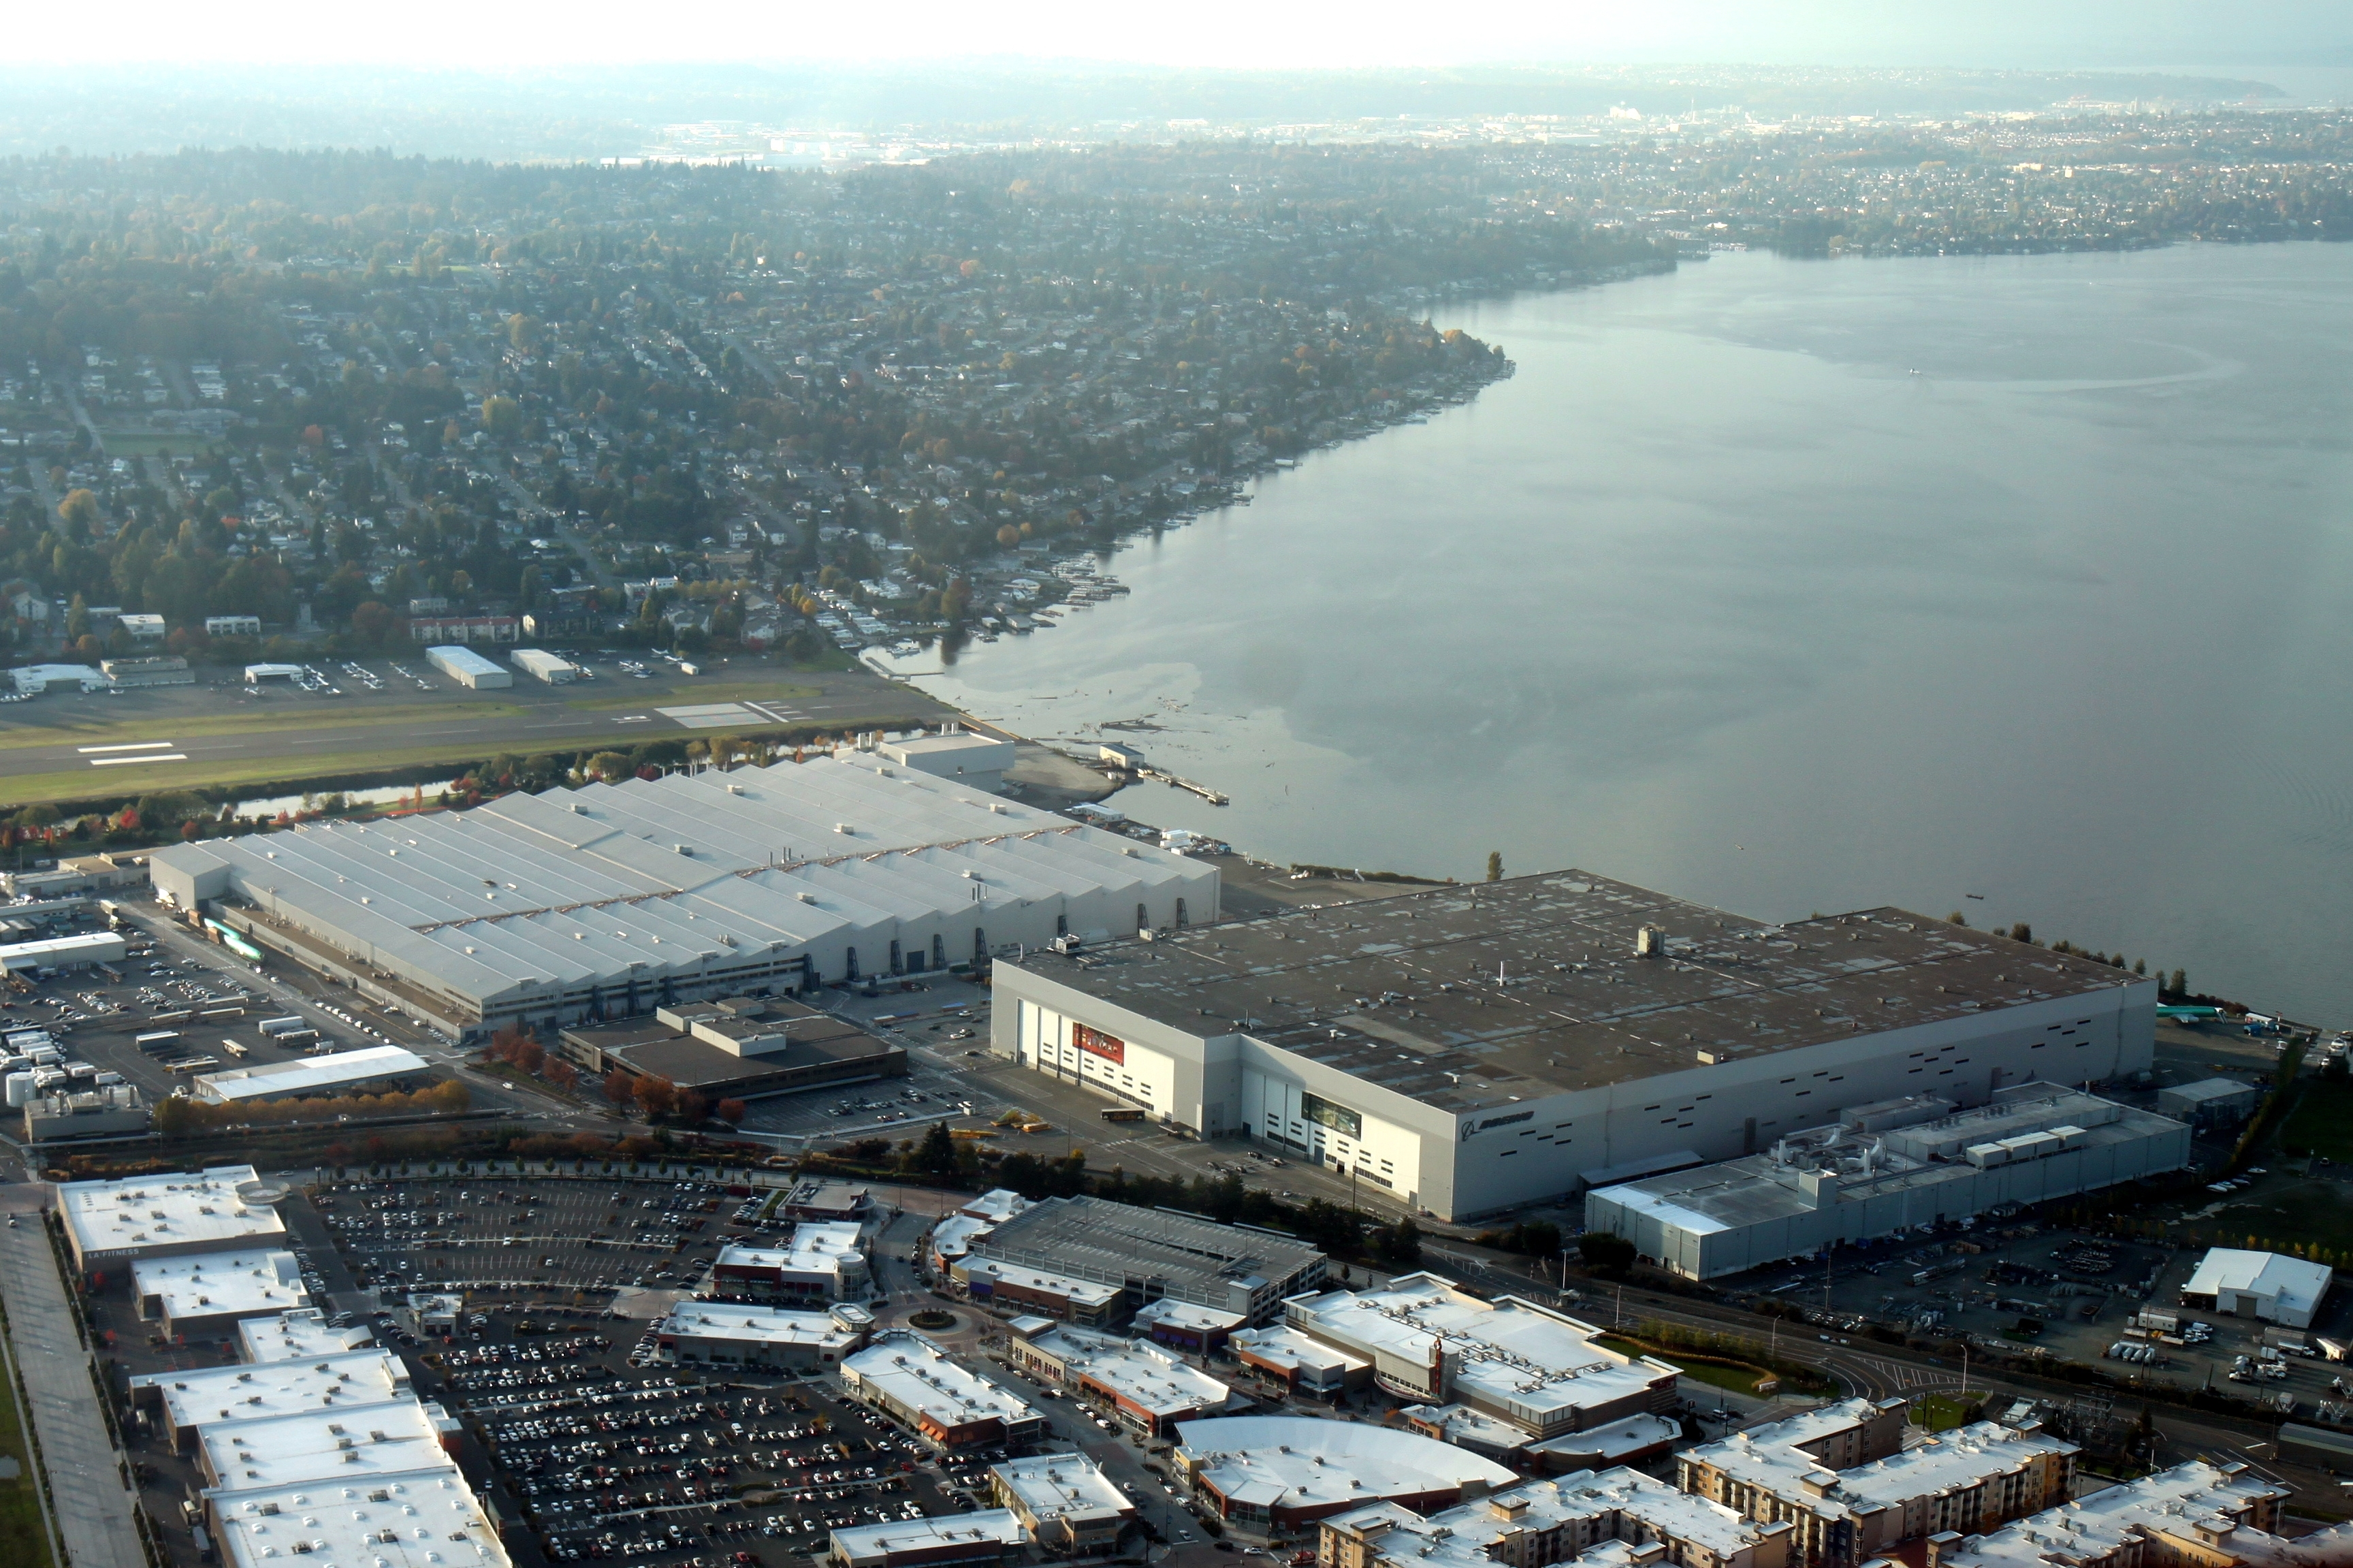 Boeing Renton Factory - Wikipedia intended for Boeing Renton Plant Site Map